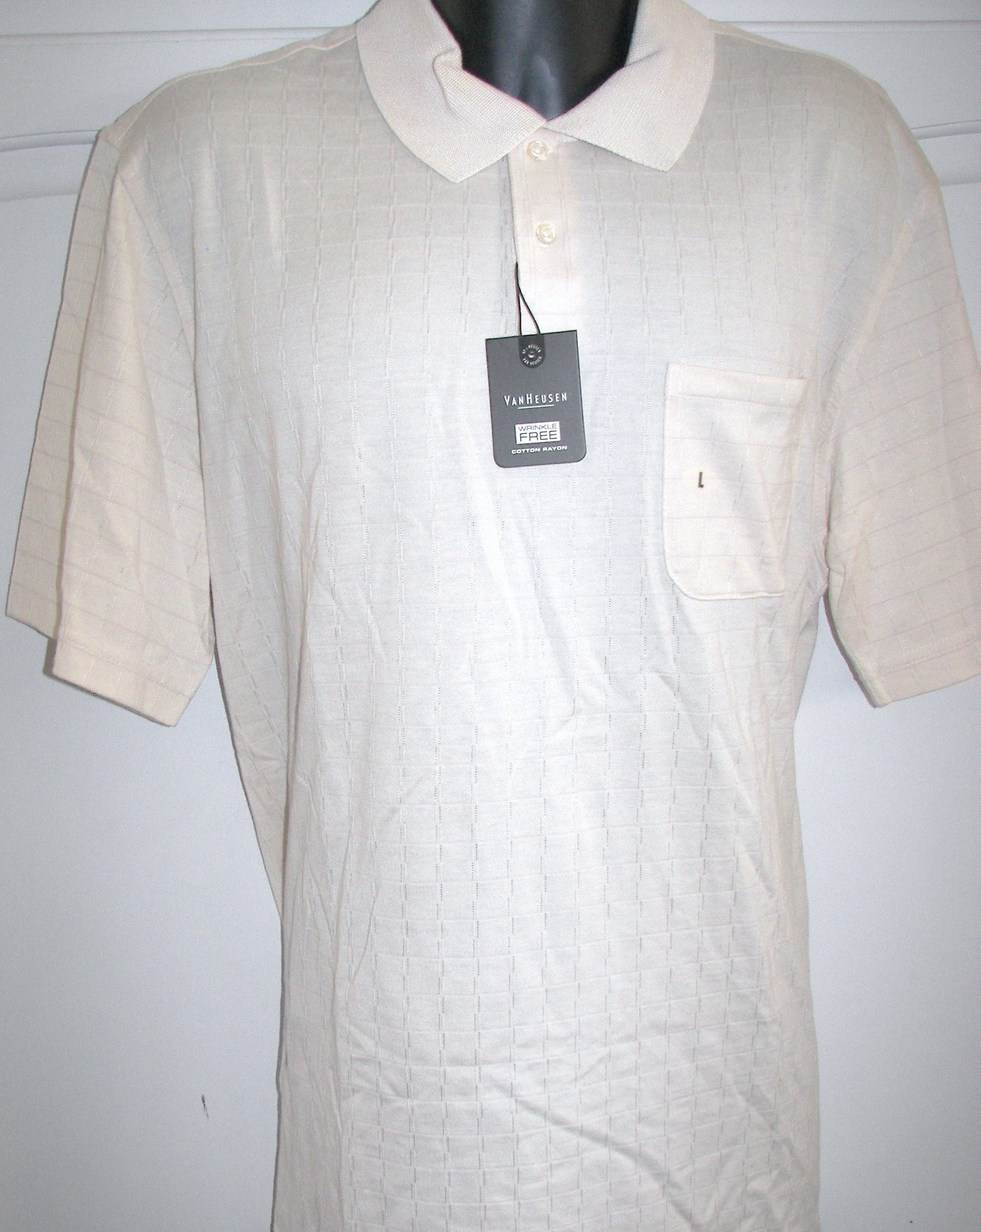 Van Heusen Mens Golf Polo Shirt Linen White XL